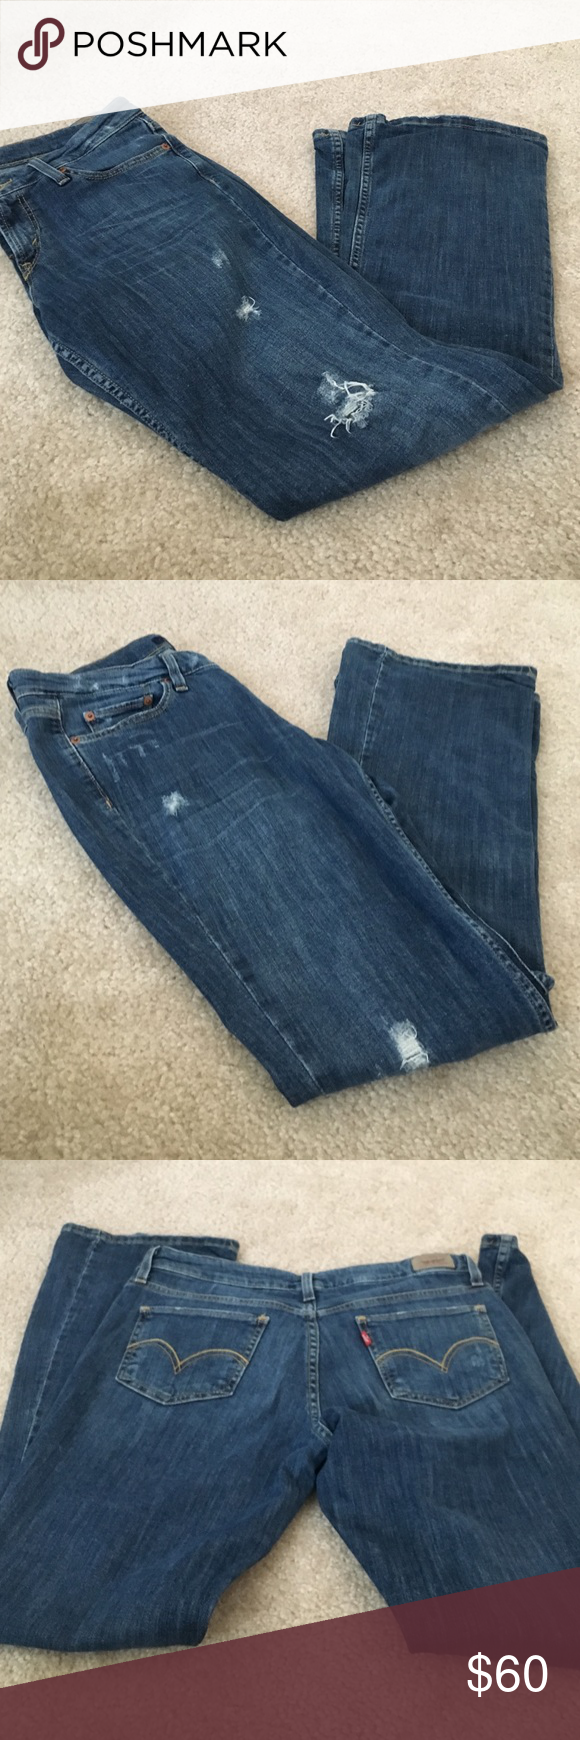 Levi's 518 jeans 👖 Distressed jeans perfect condition. No trades. Levi's Jeans Boot Cut